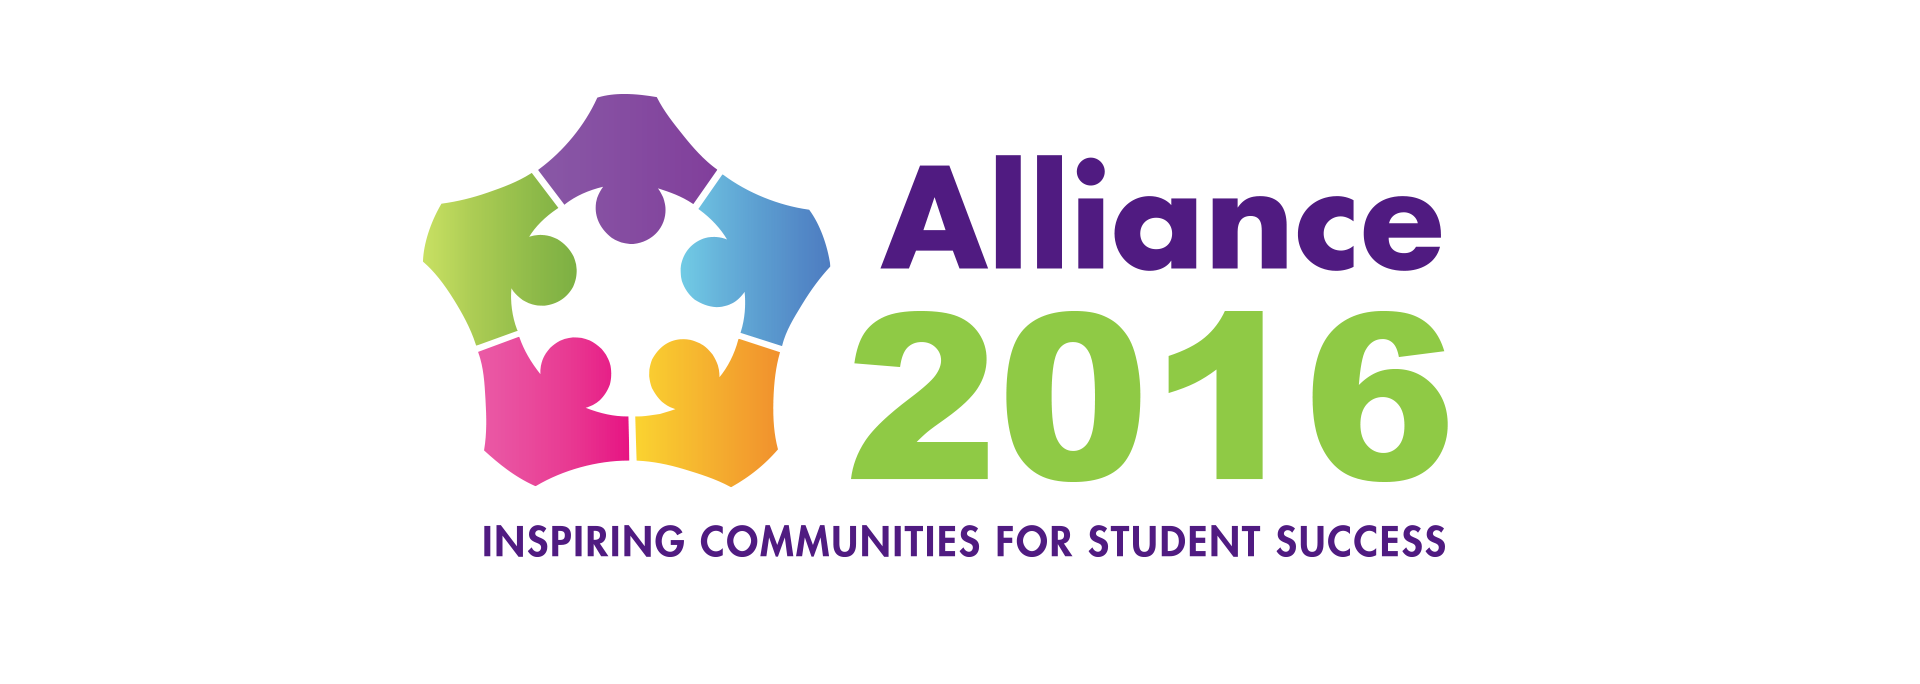 alliance-2016-banner-size